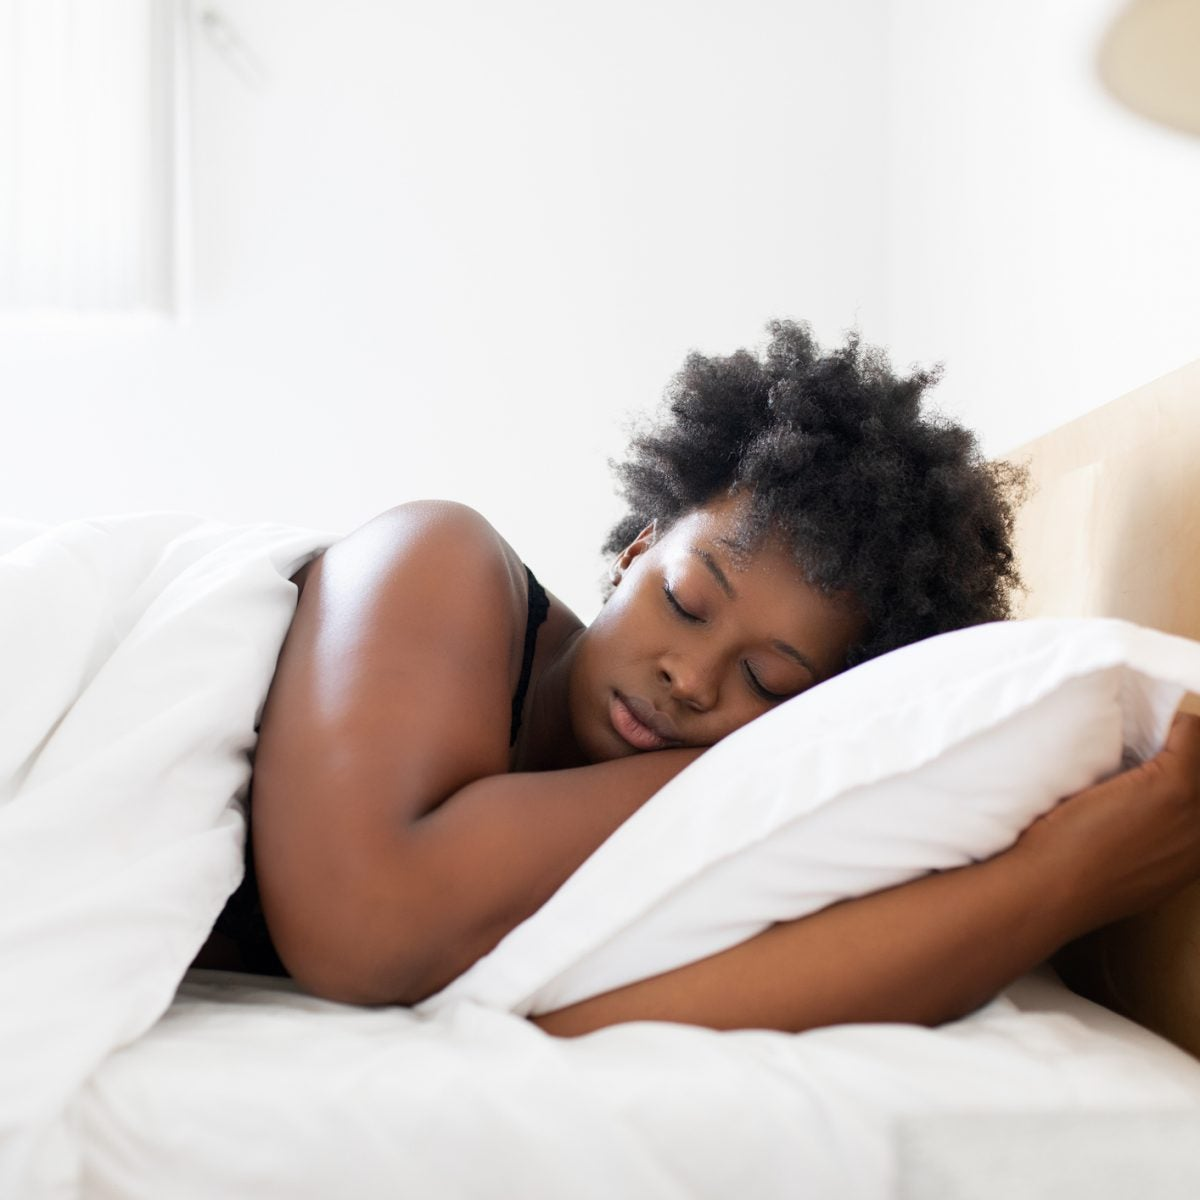 12 Items To Have Handy If You Want A Better Night's Sleep